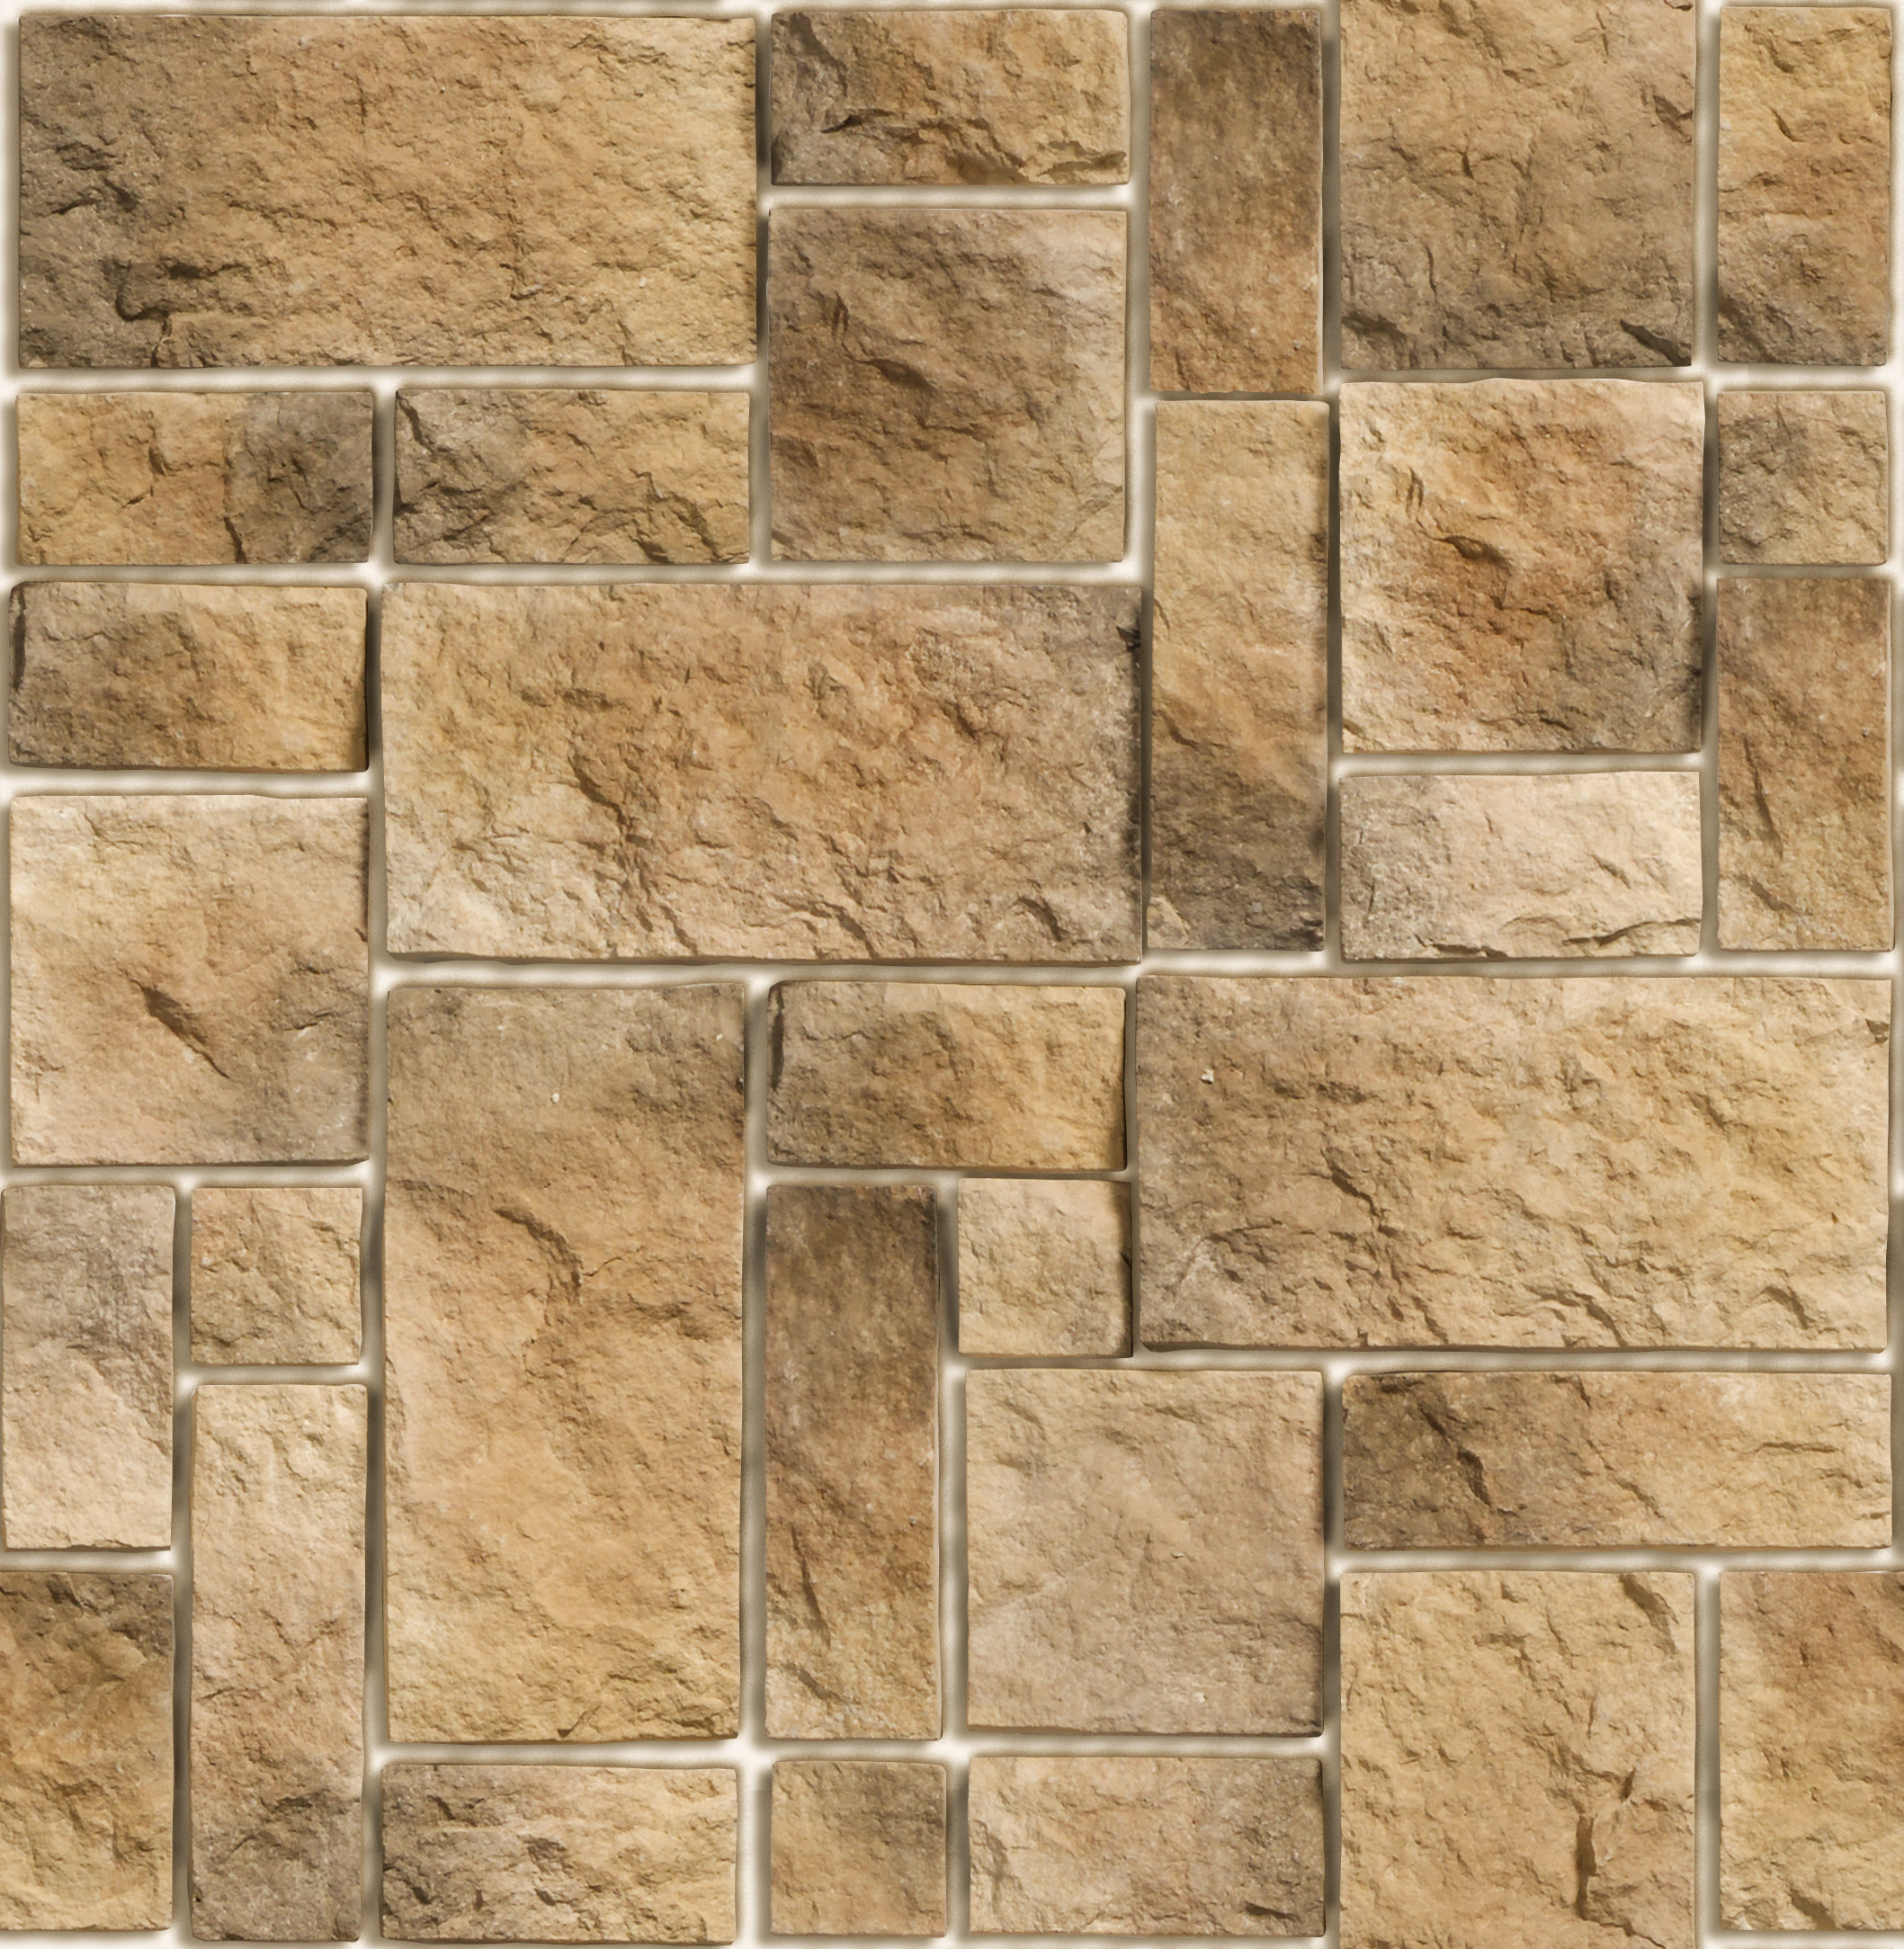 Stone Hewn Tile Texture Wall Download Photo Stone Texture